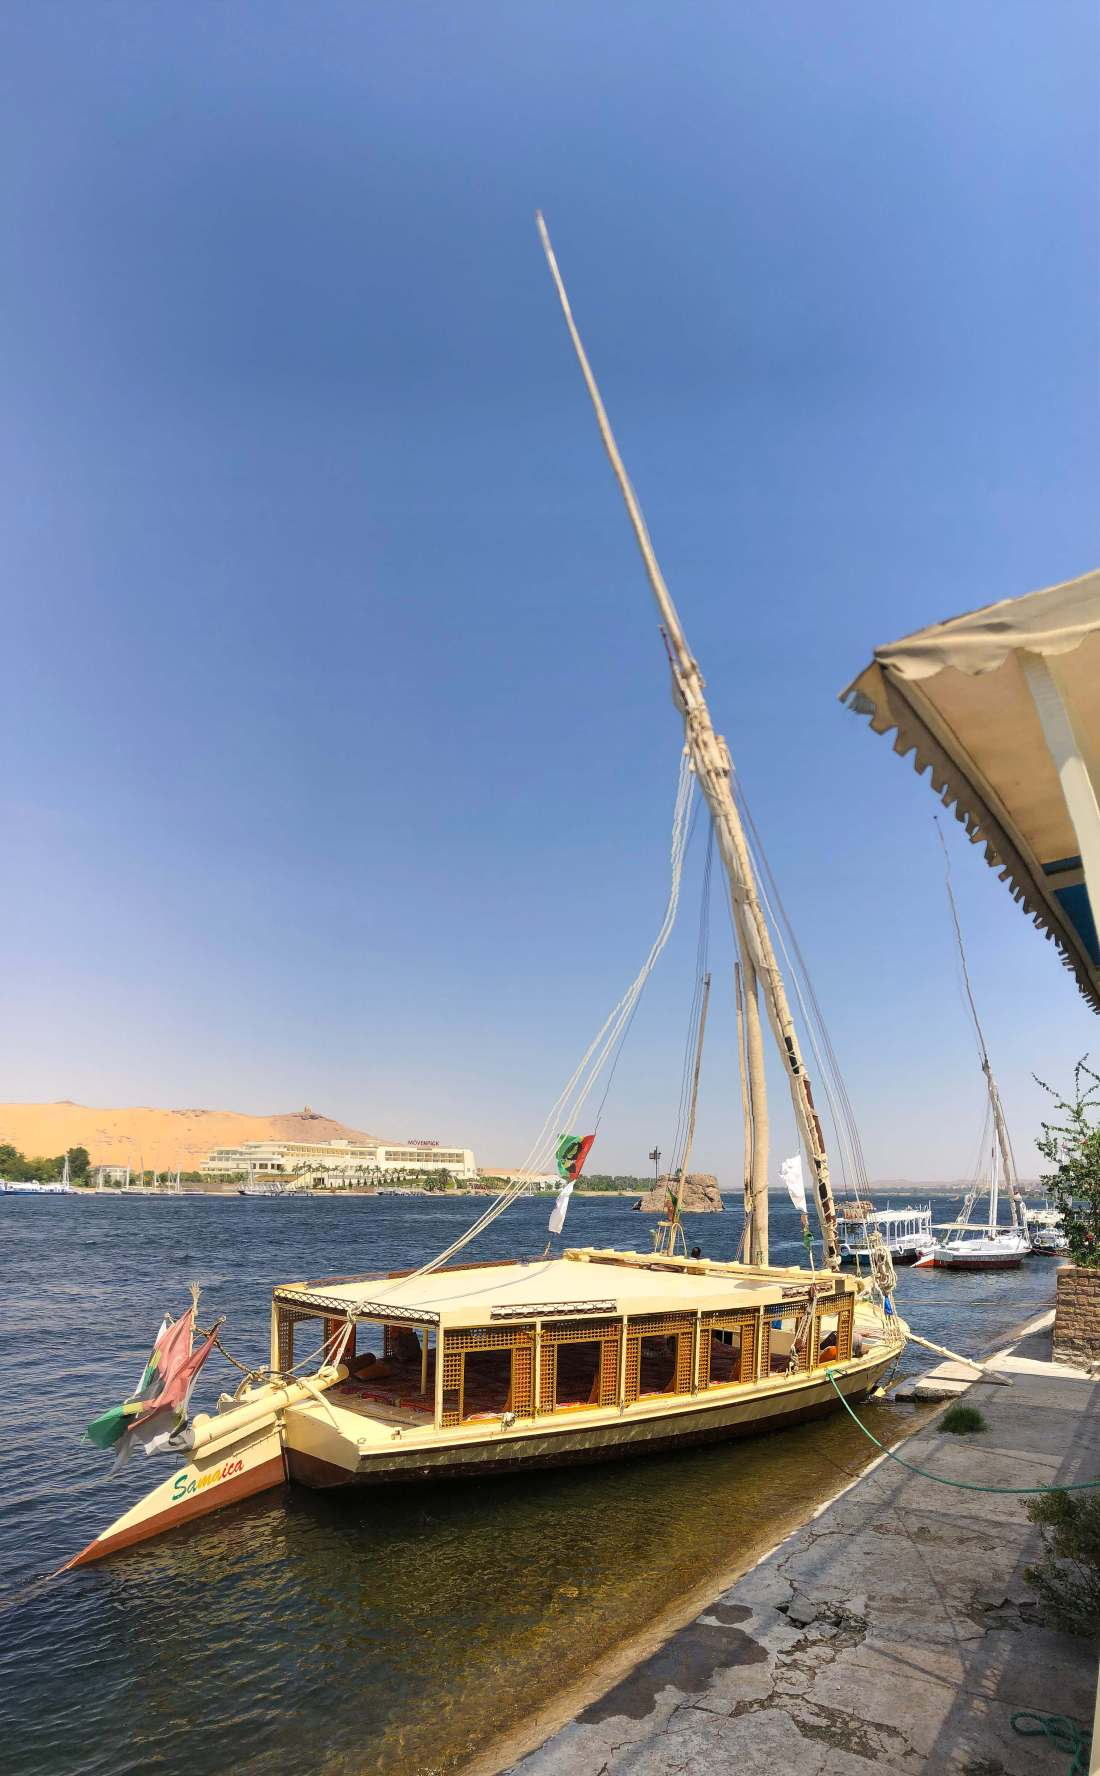 Intrepid Nile Felucca